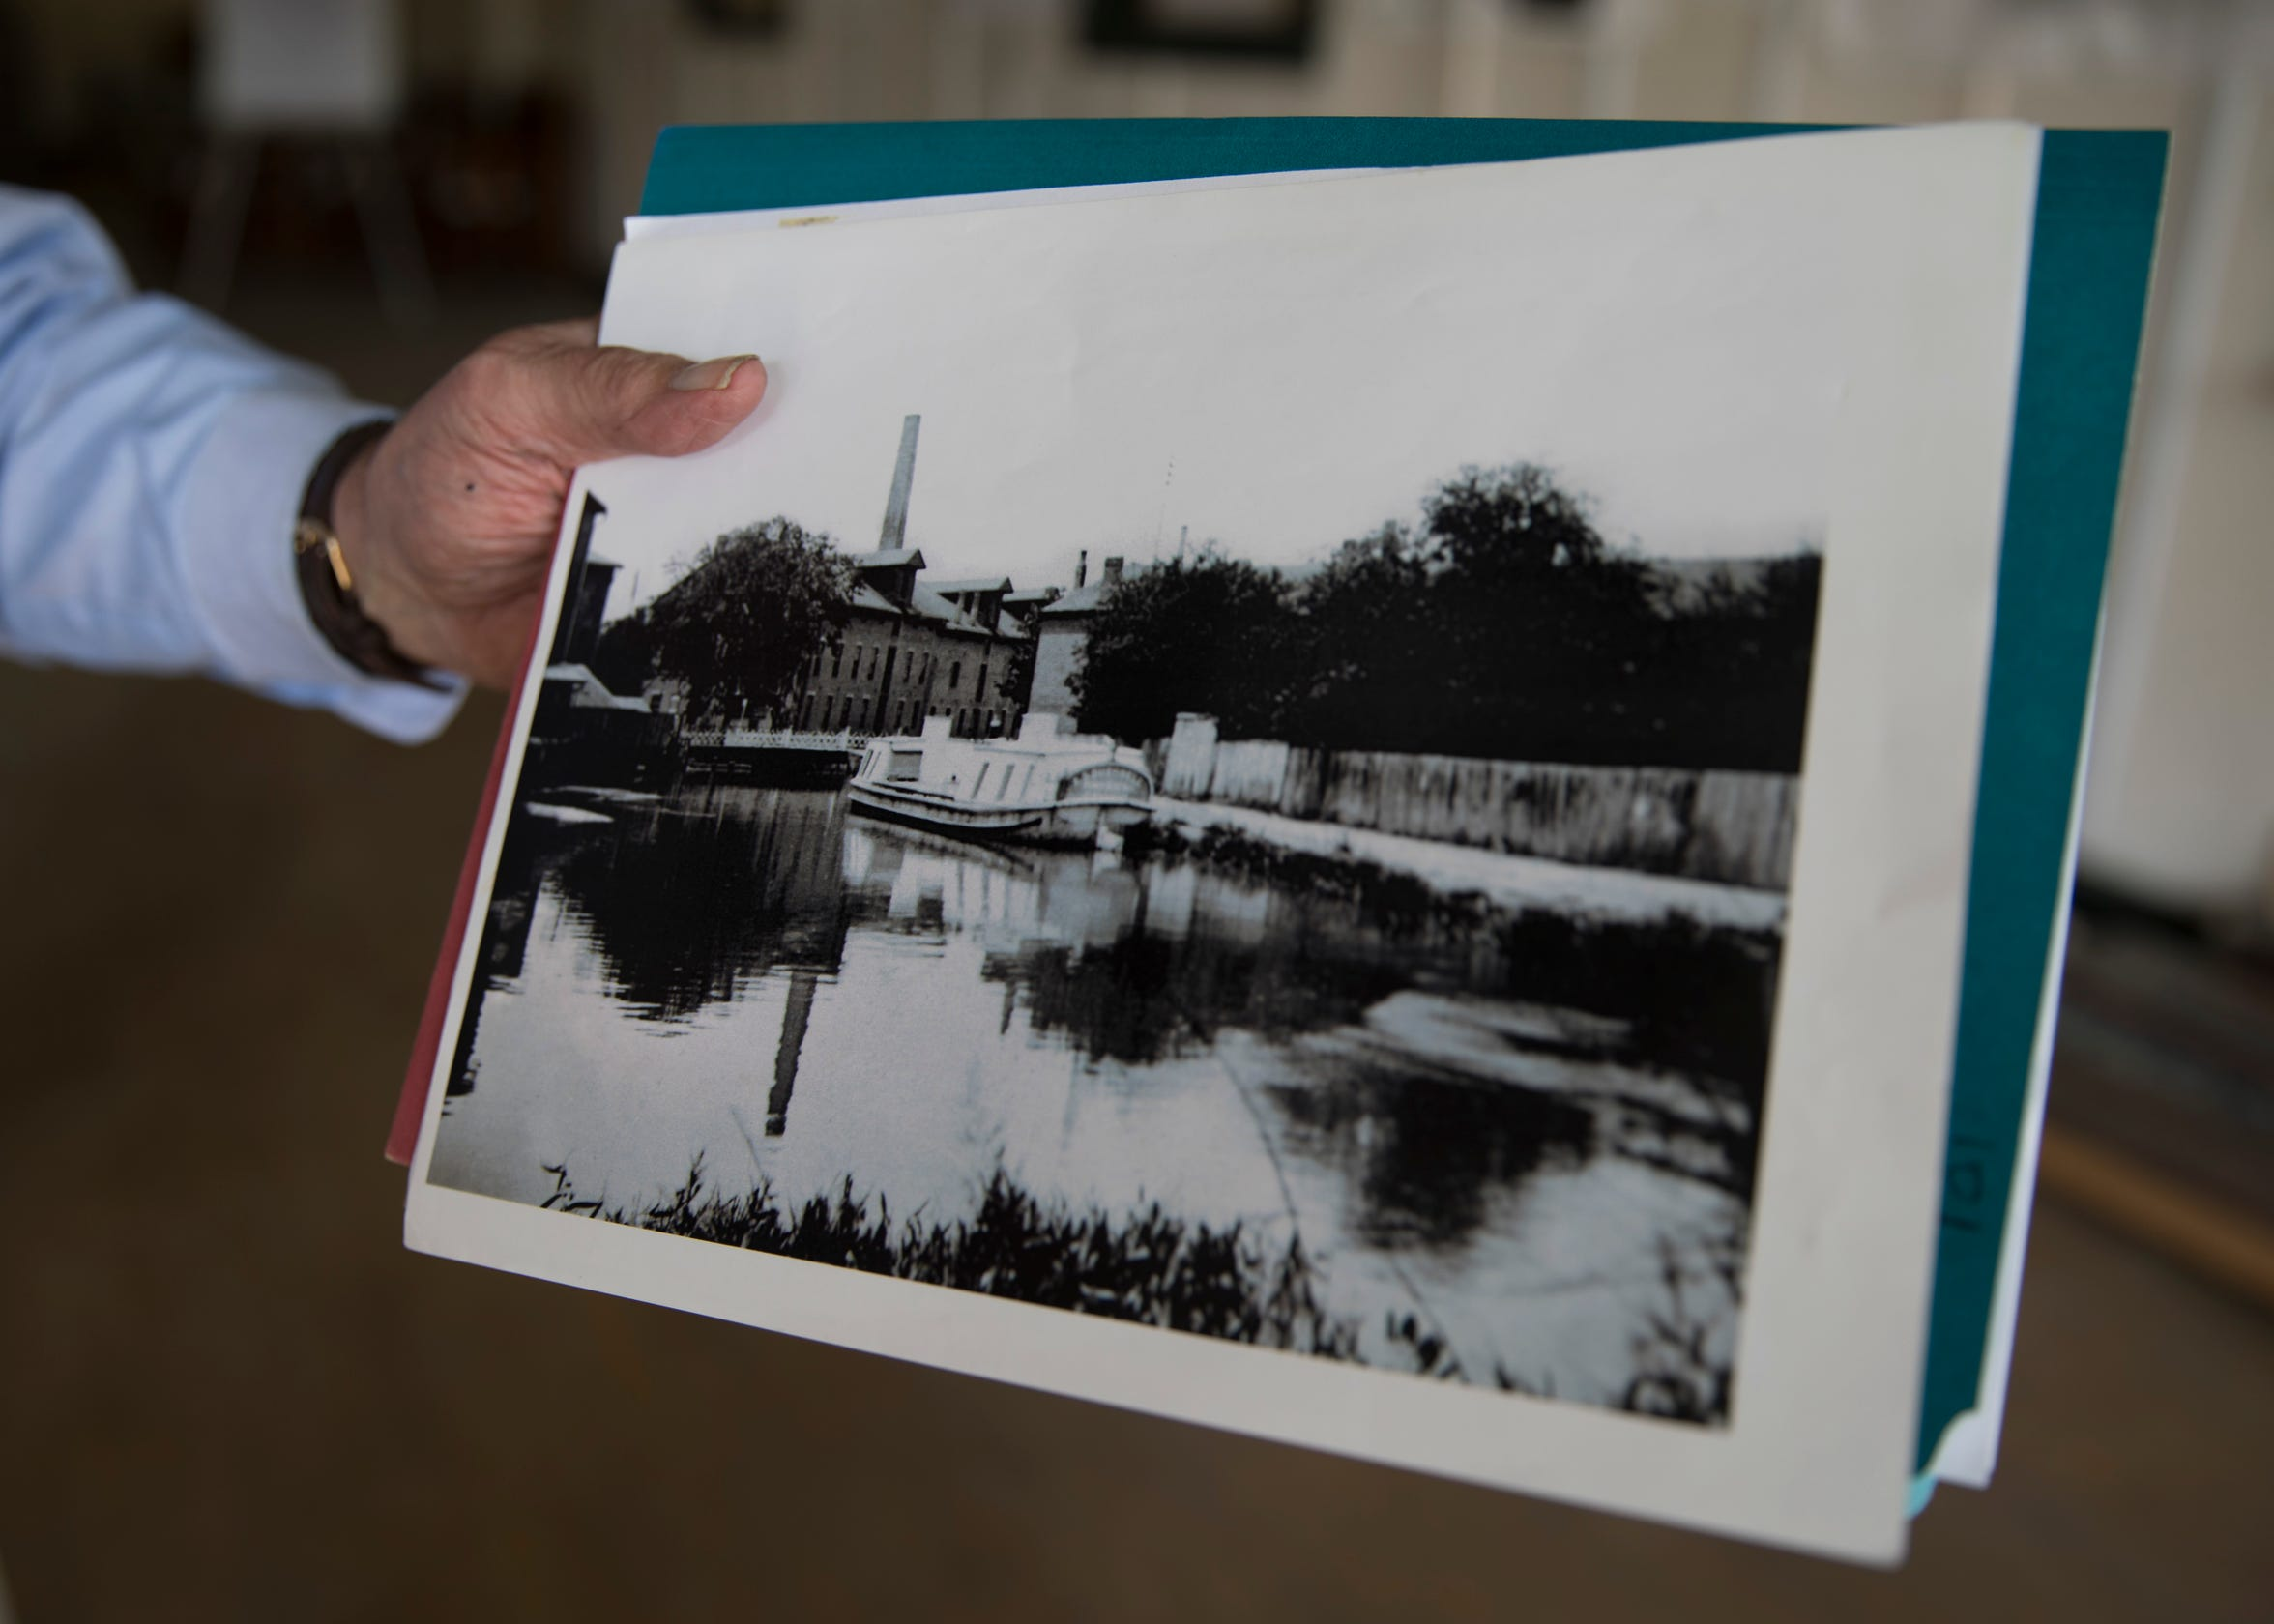 Franklin Conaway holds a photo of the old canal warehouse taken in the late 1800s when the canal was still active in Chillicothe.